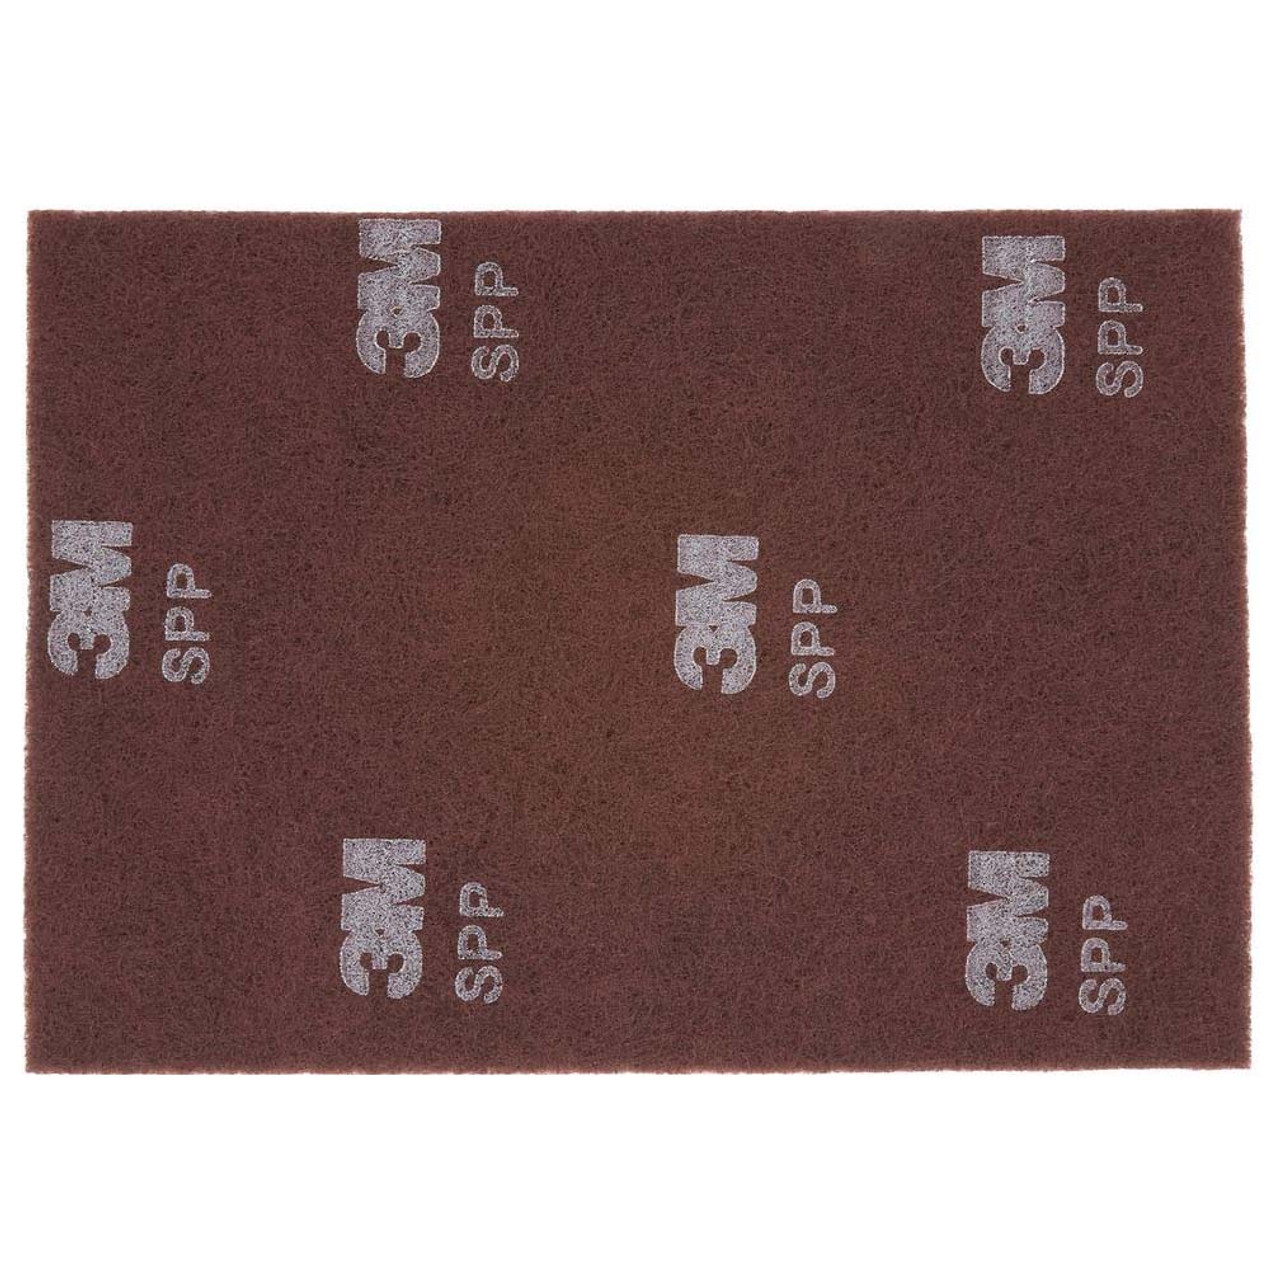 3m Sppp14x20 Scotchbrite Surface Preparation Pad Plus Rectangle Floor Pads 14x20x1 Inch Thick Maroon 7100151282 Case Of 5 Pads Gw